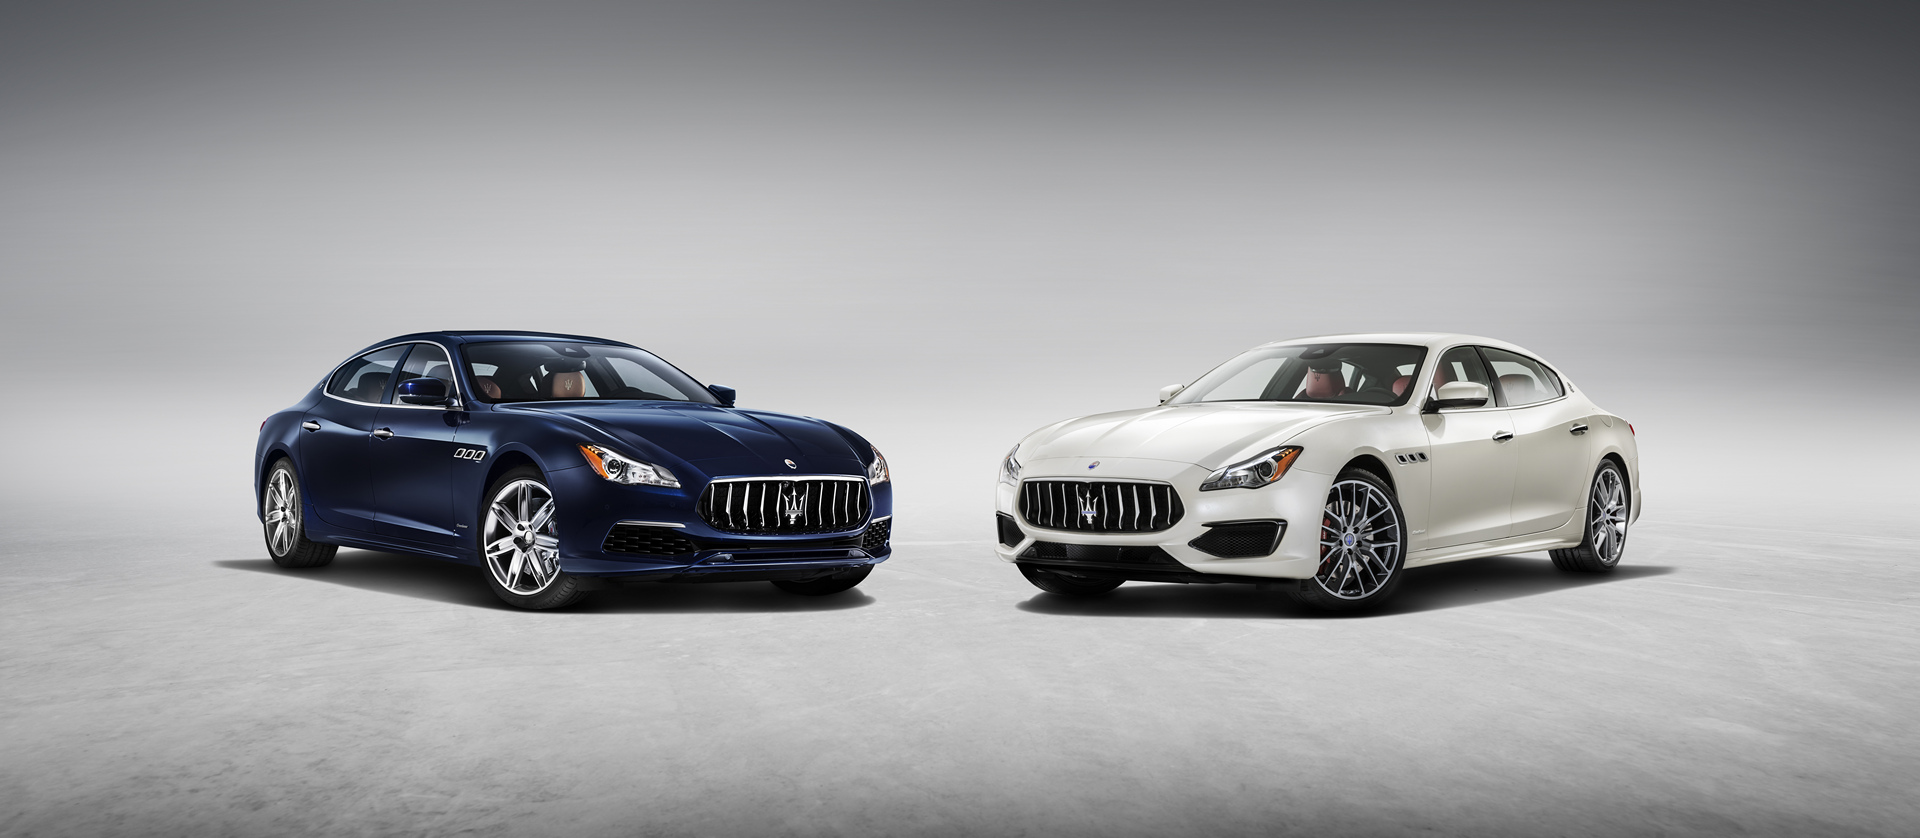 New Quattroporte SQ4 GranLusso version & GTS GranSport © Fiat Chrysler Automobiles N.V.